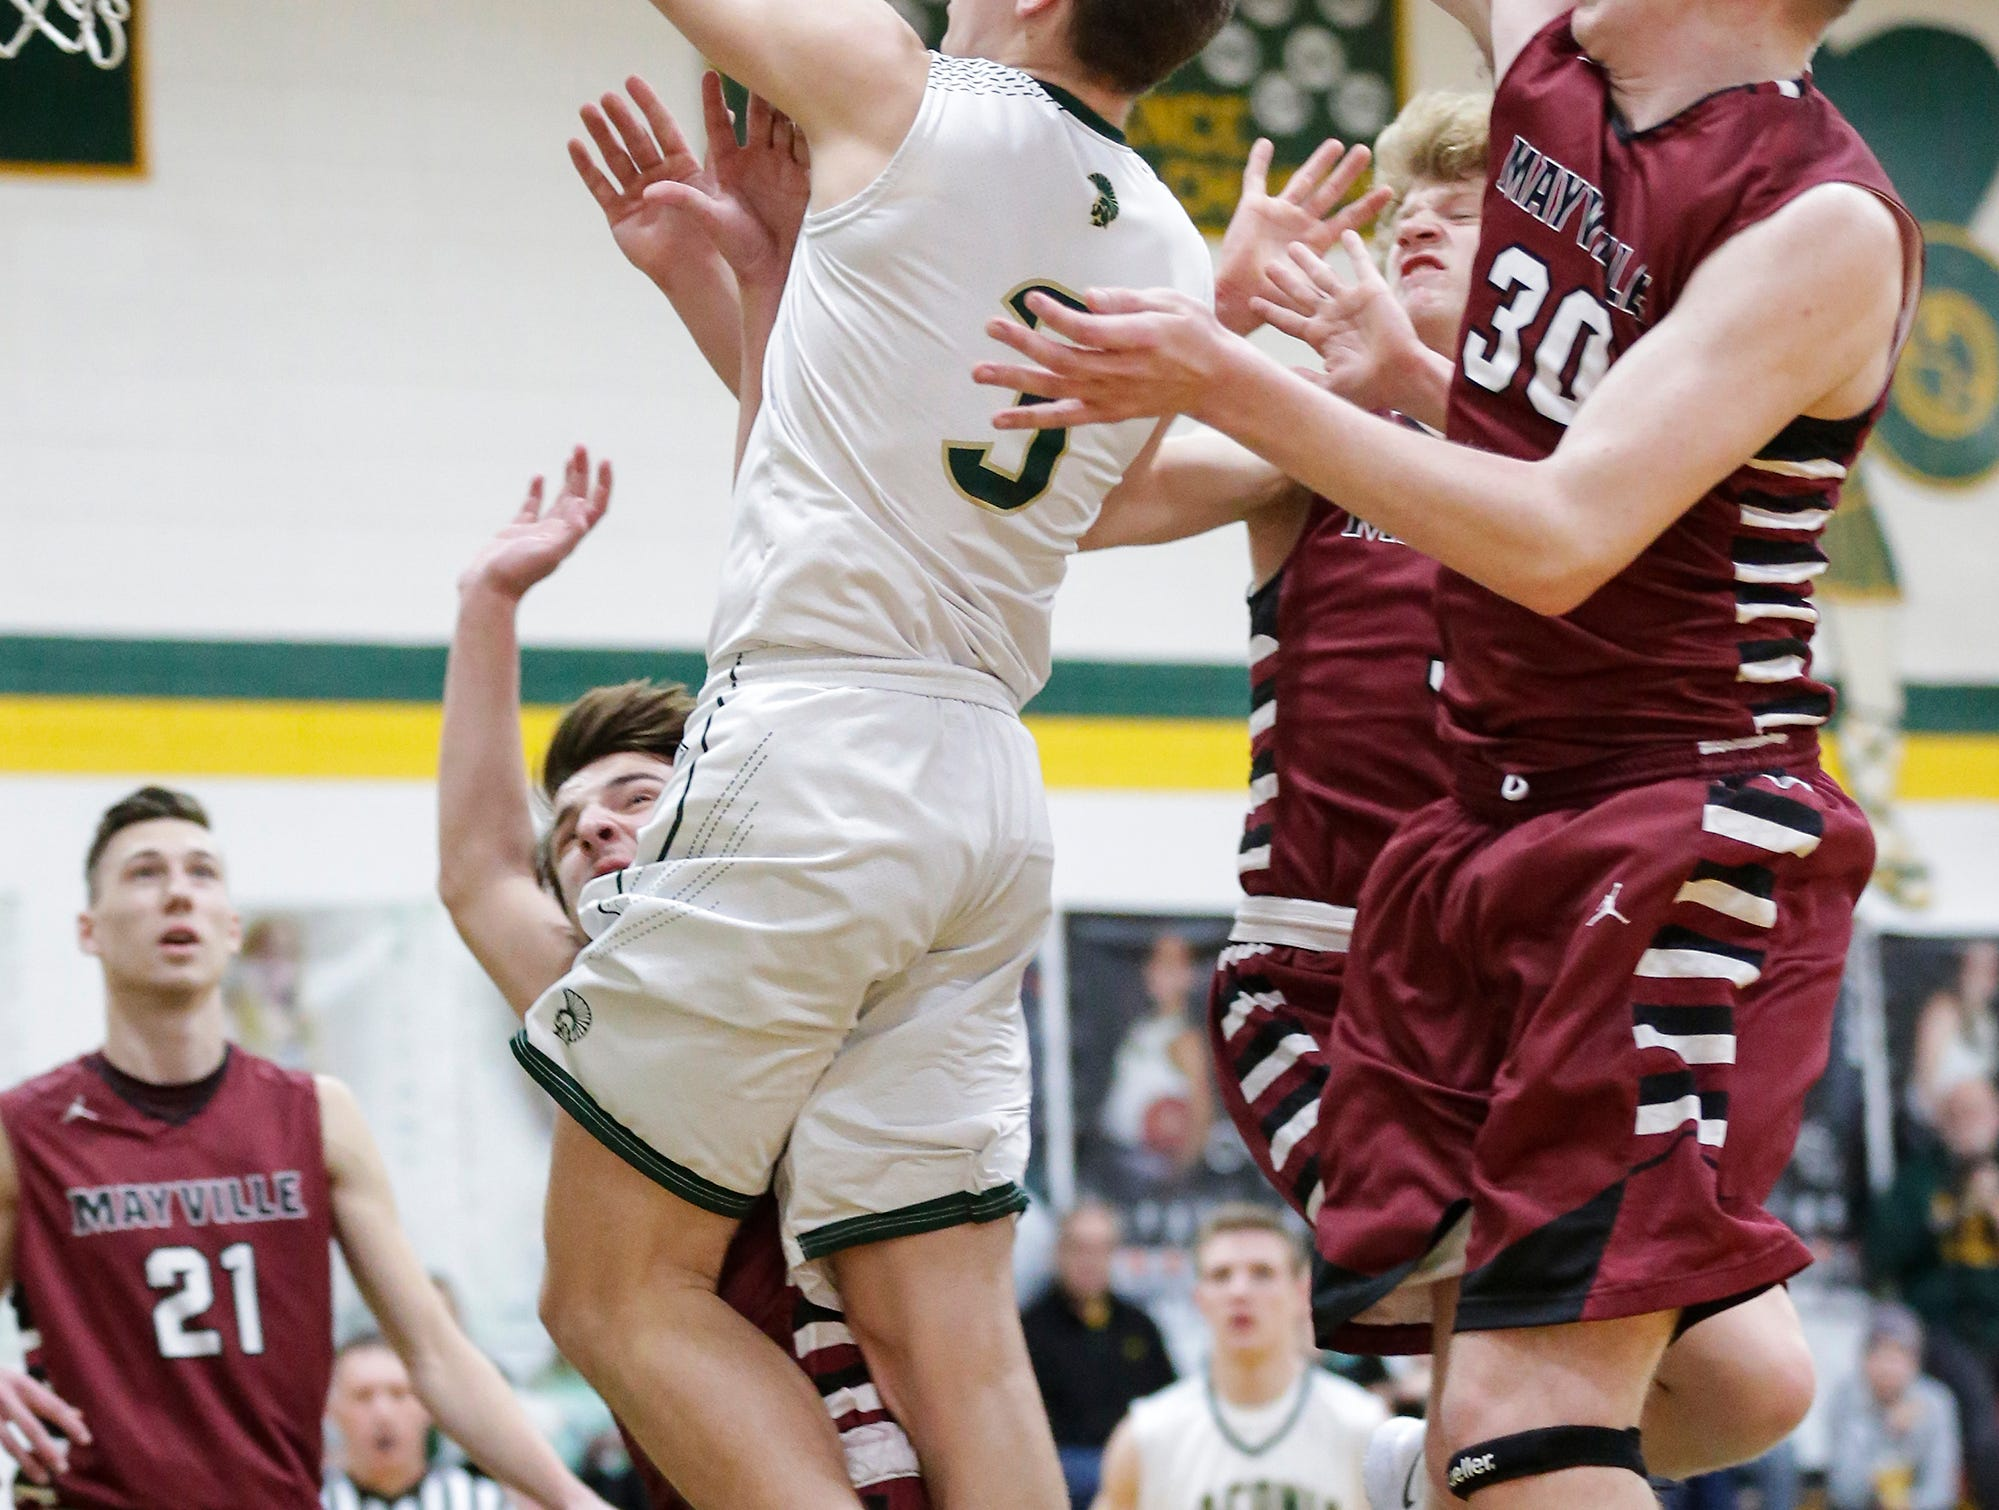 Laconia High School boys basketball's Reed Gunnink gets fouled by Mayville High School's Tyler Gutjahr (14) while Logan Arroyo reaches from behind during their game Friday, January 25, 2019 in Rosendale. Laconia won the game 80-54. Doug Raflik/USA TODAY NETWORK-Wisconsin